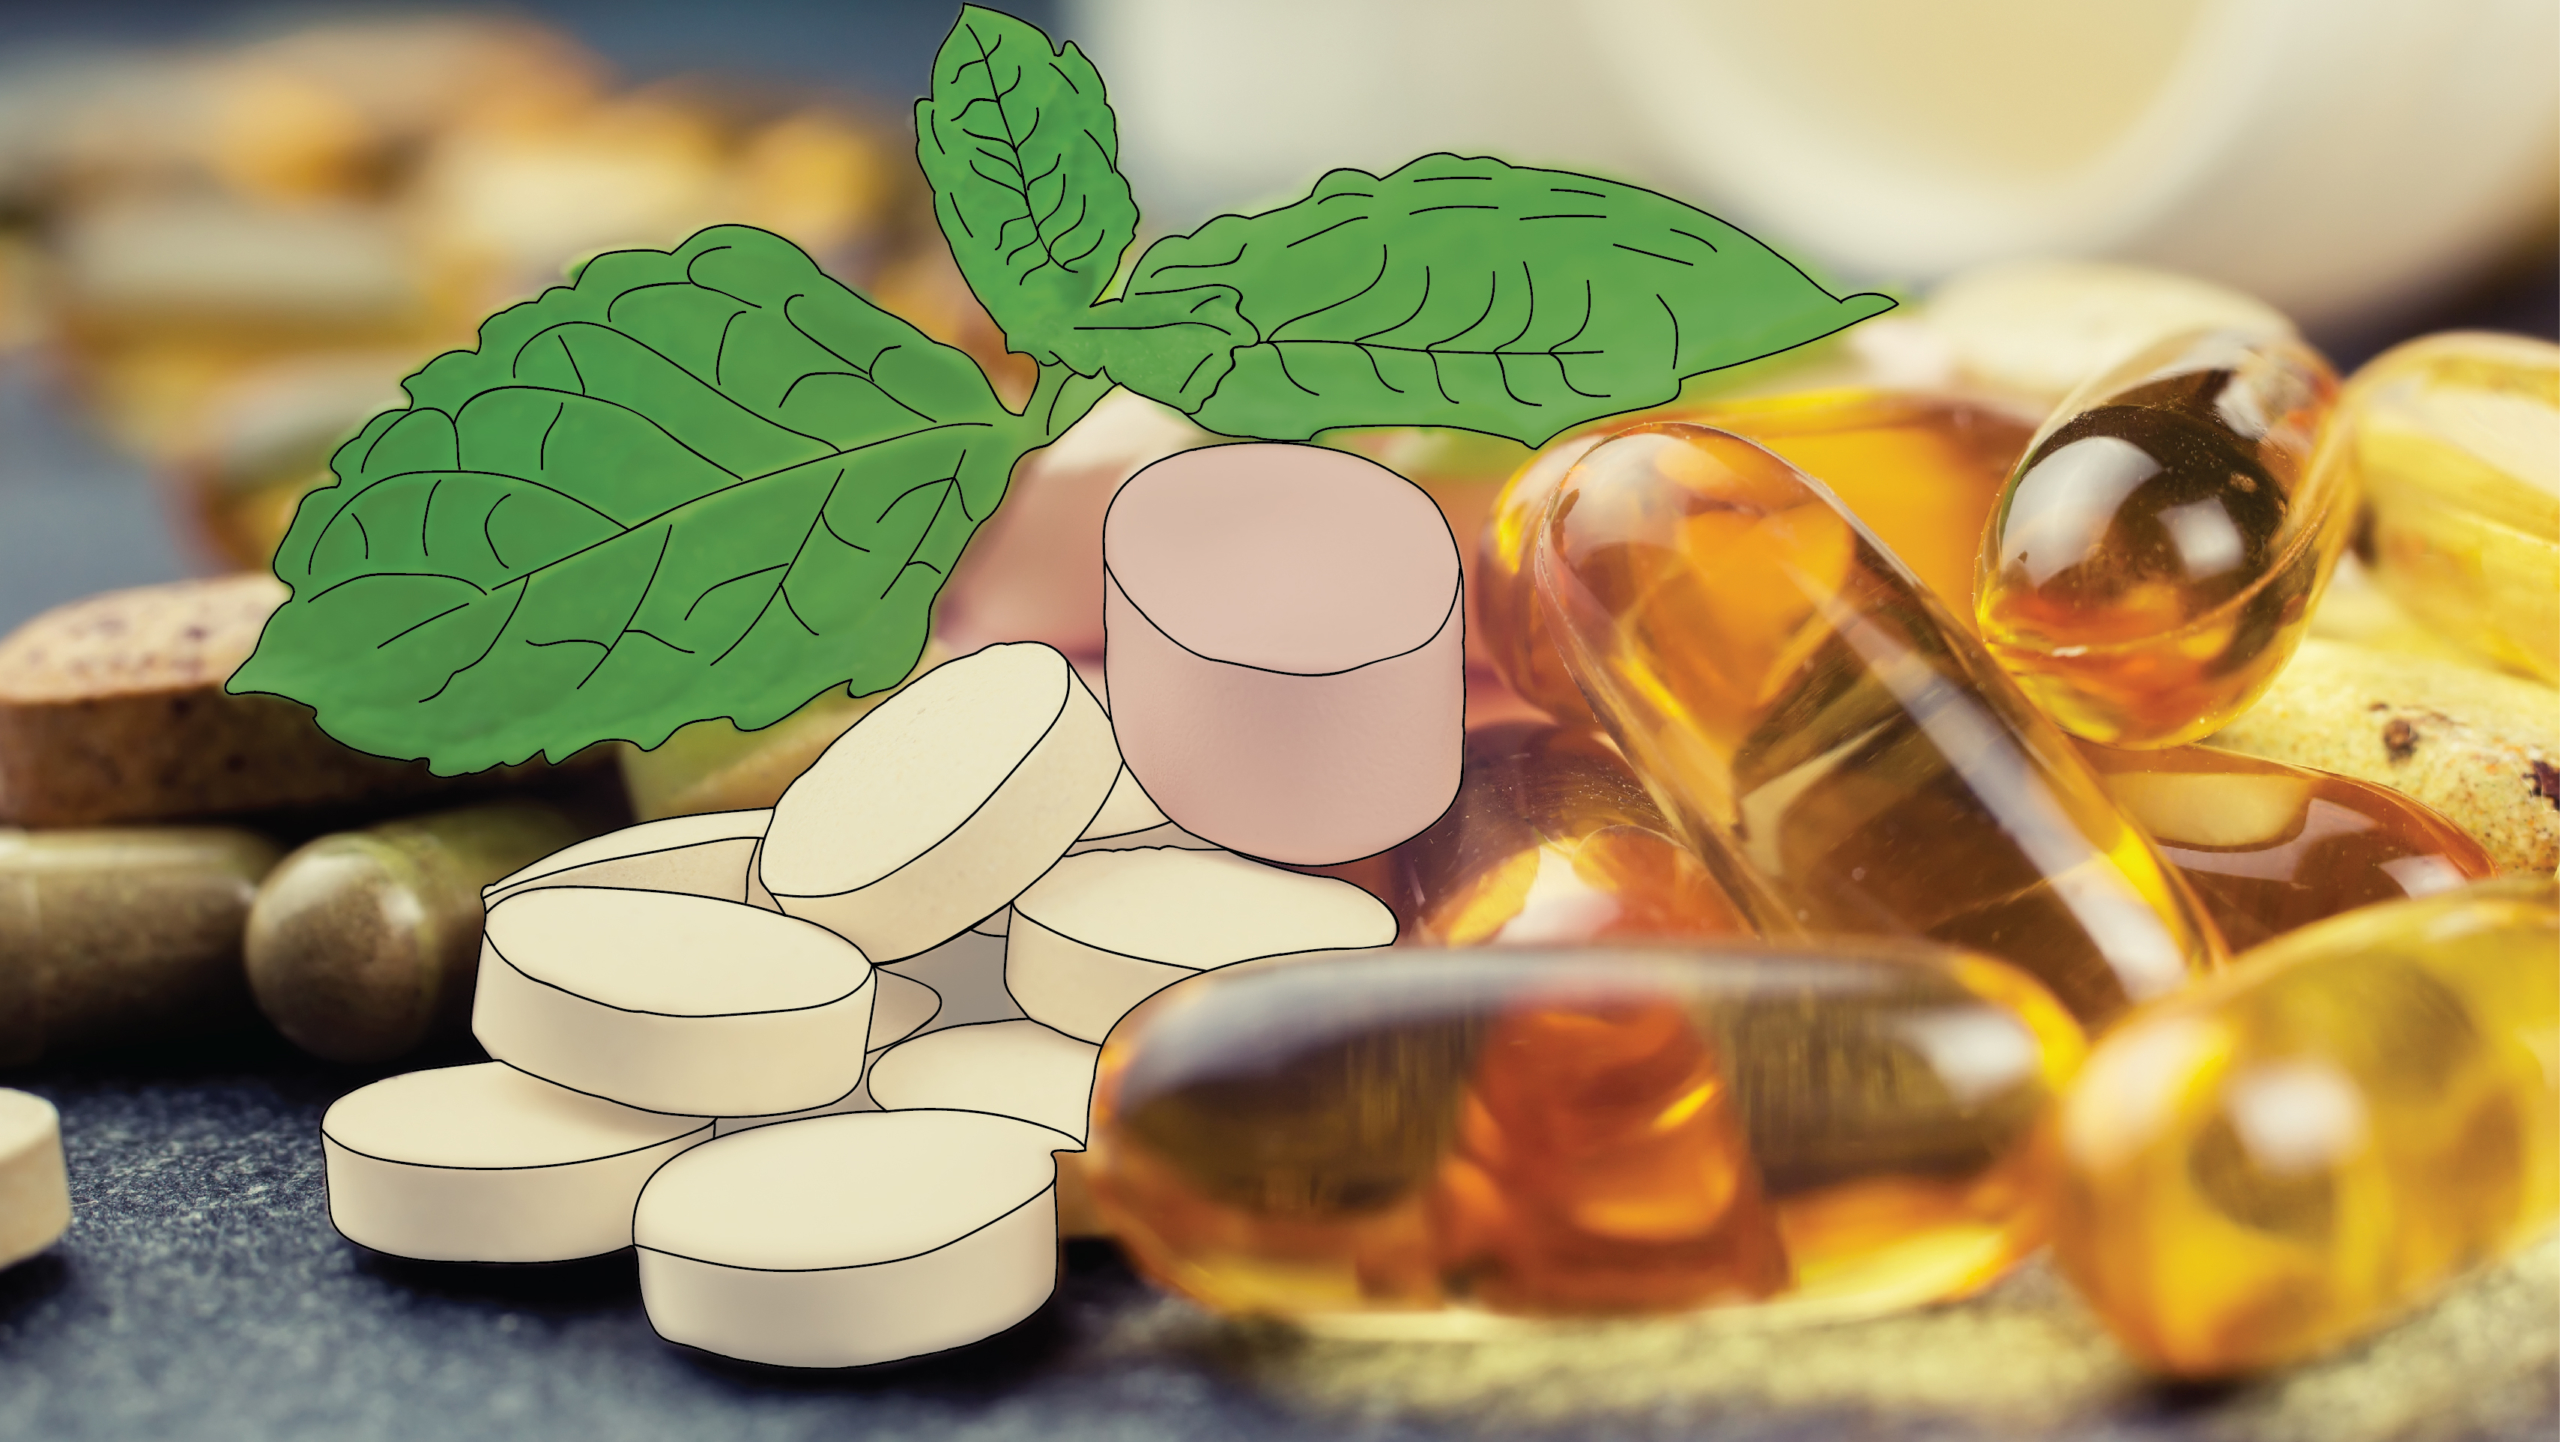 A variety of different supplements and vitamins